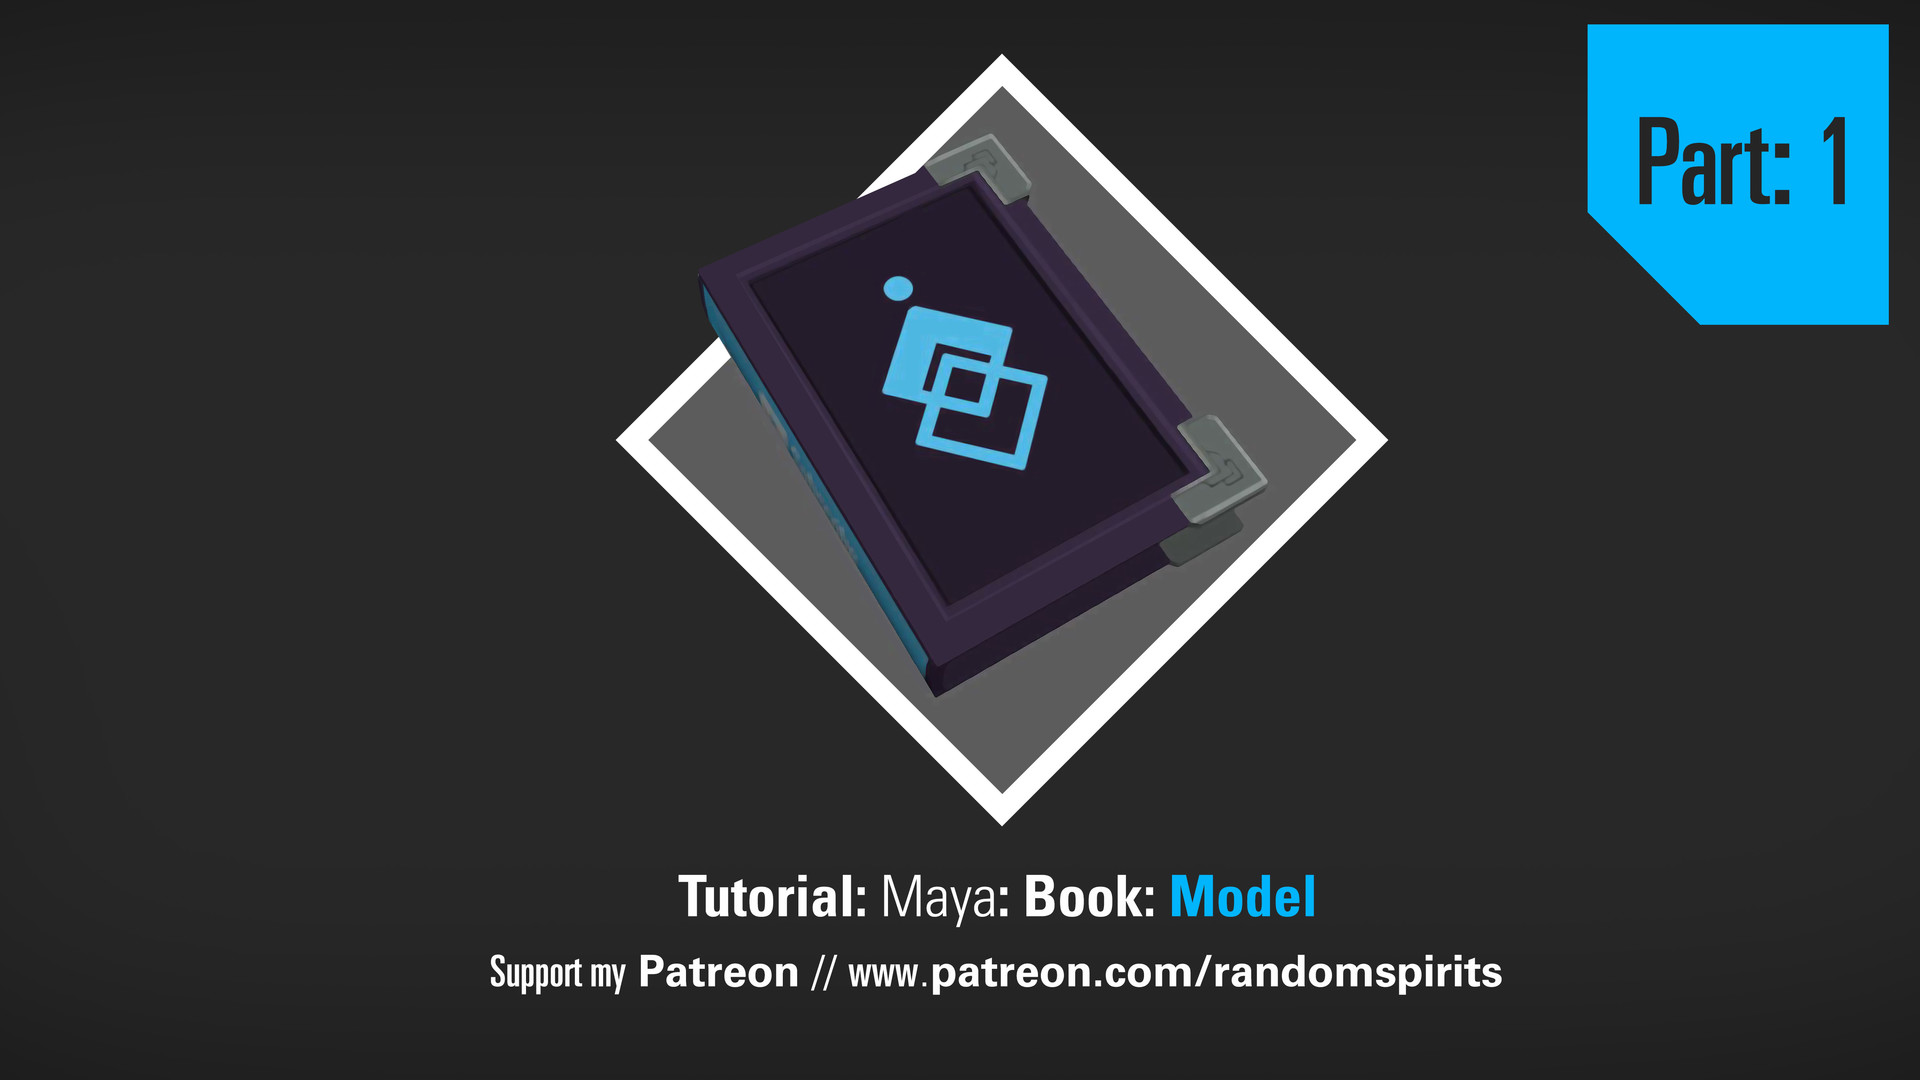 Tim kaminski tutorial maya book p1